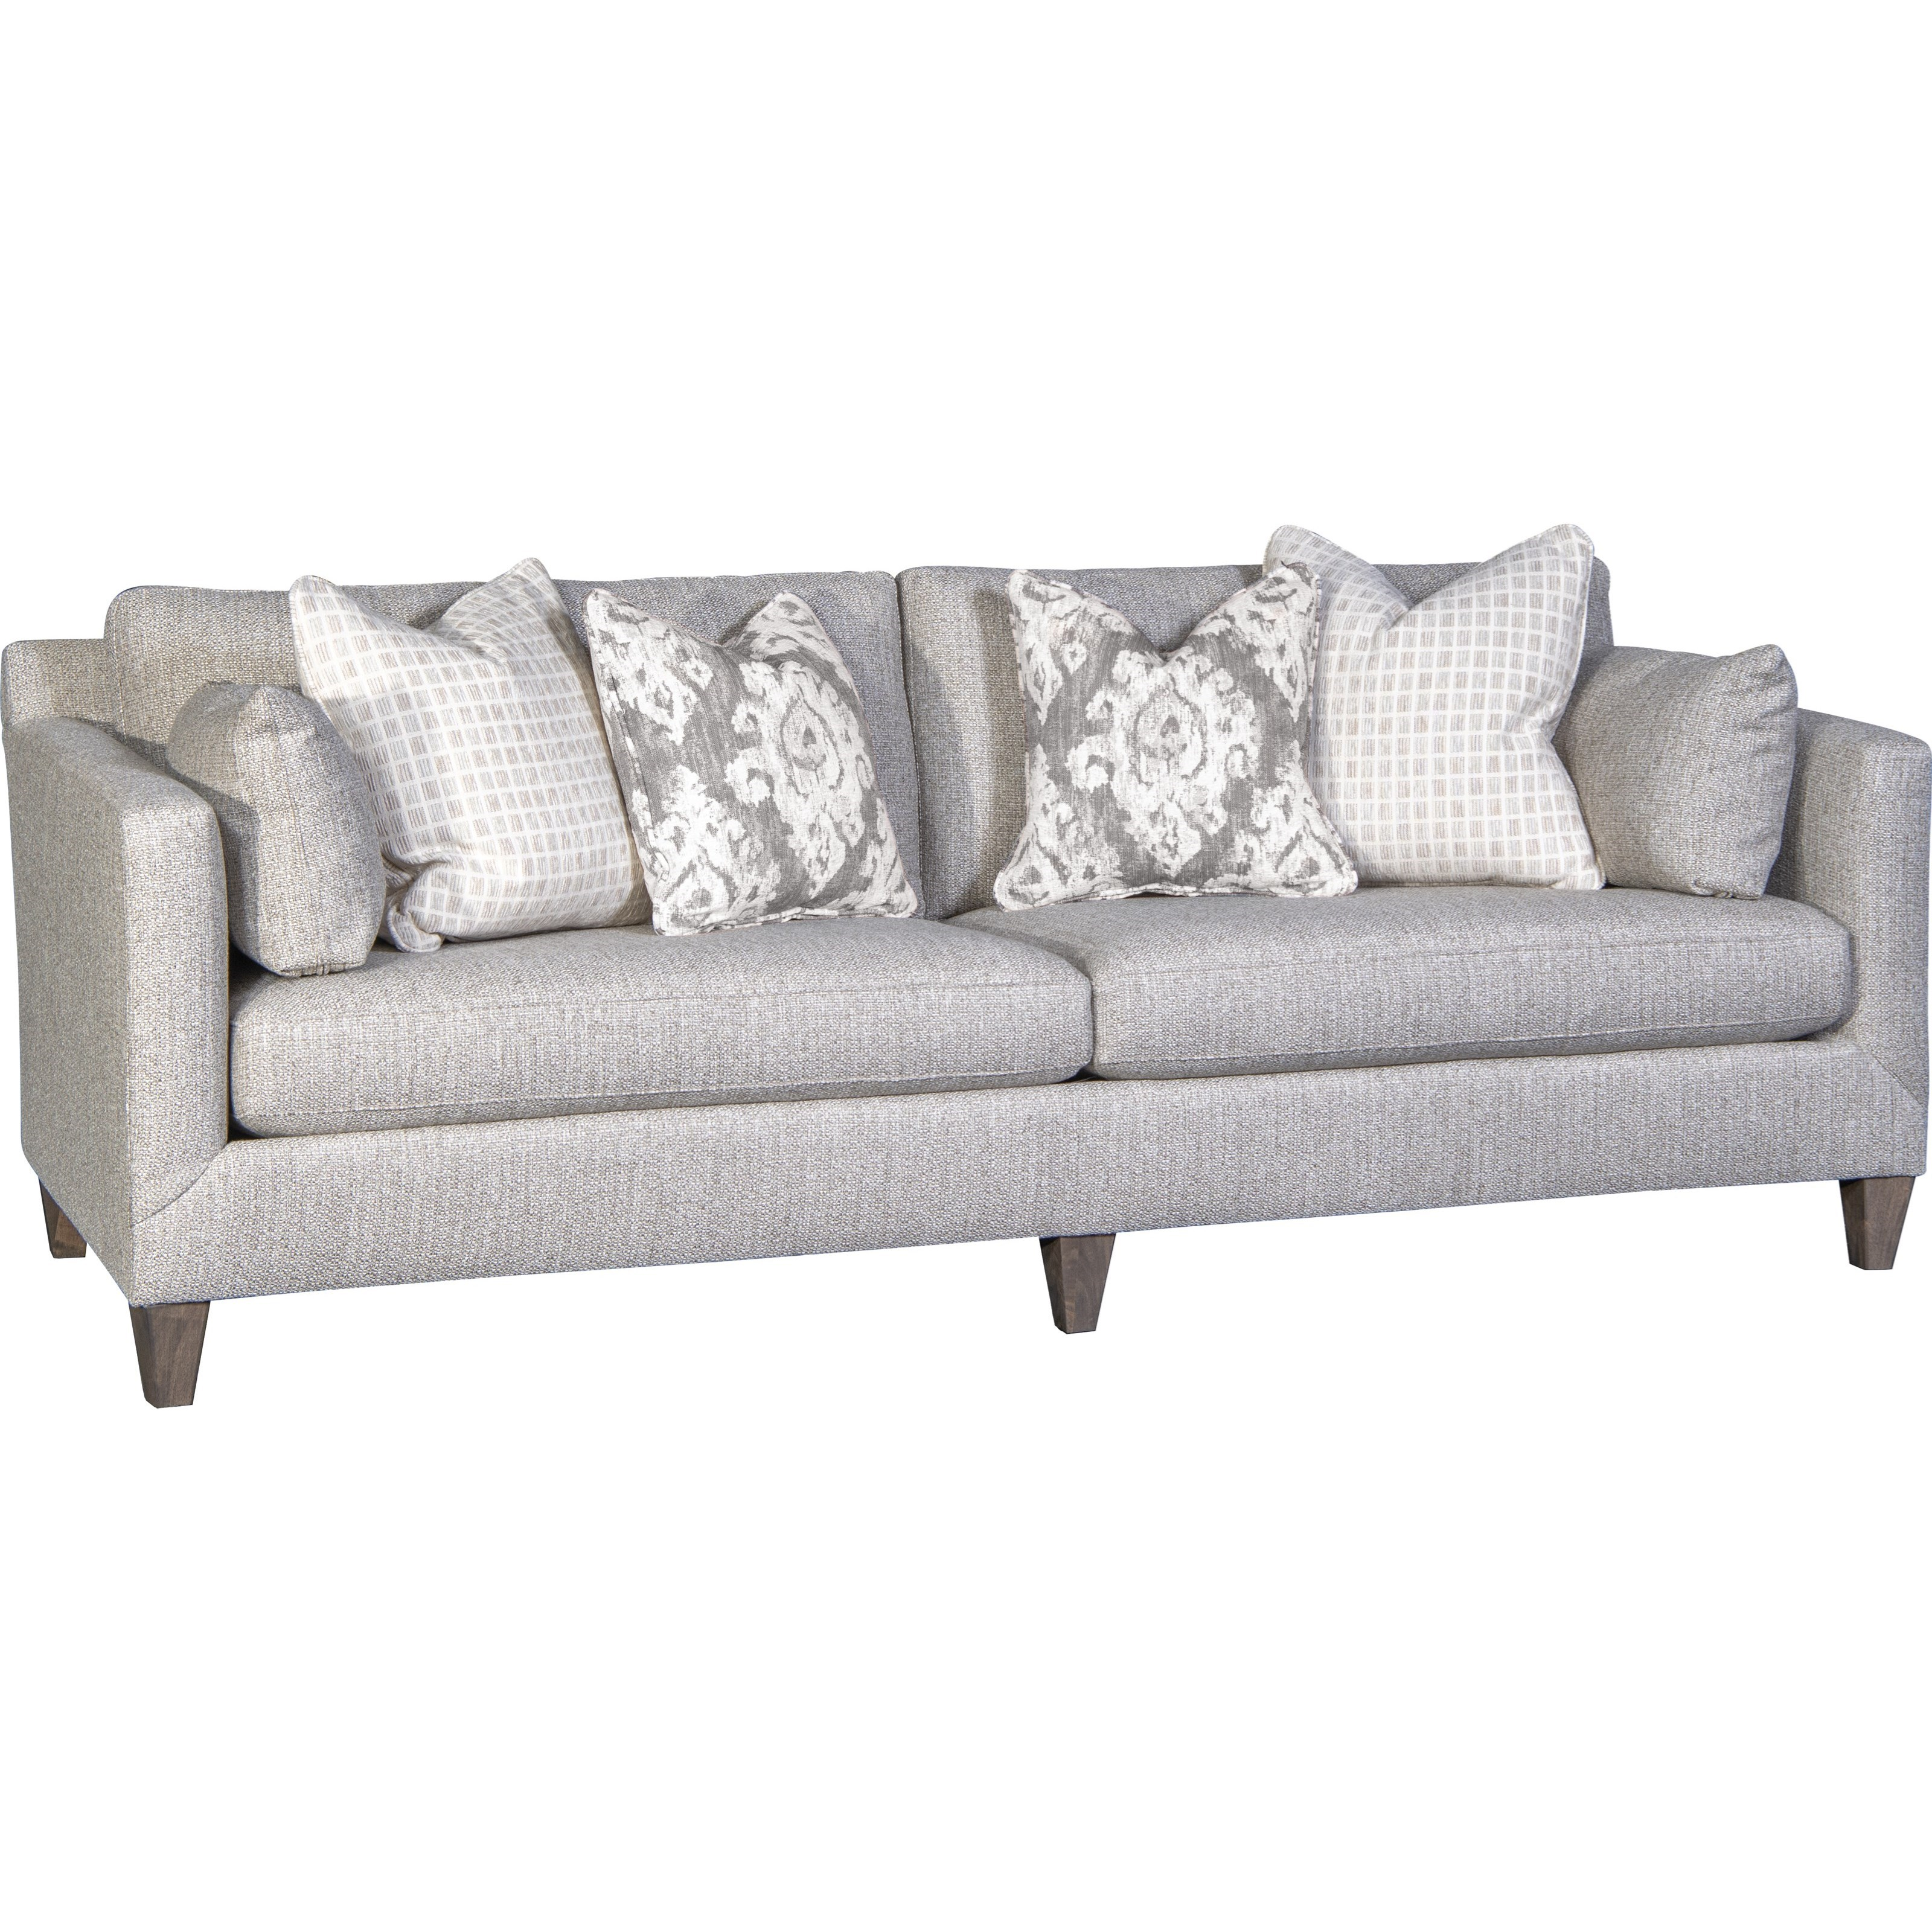 3555 Sofa by Mayo at Wilson's Furniture